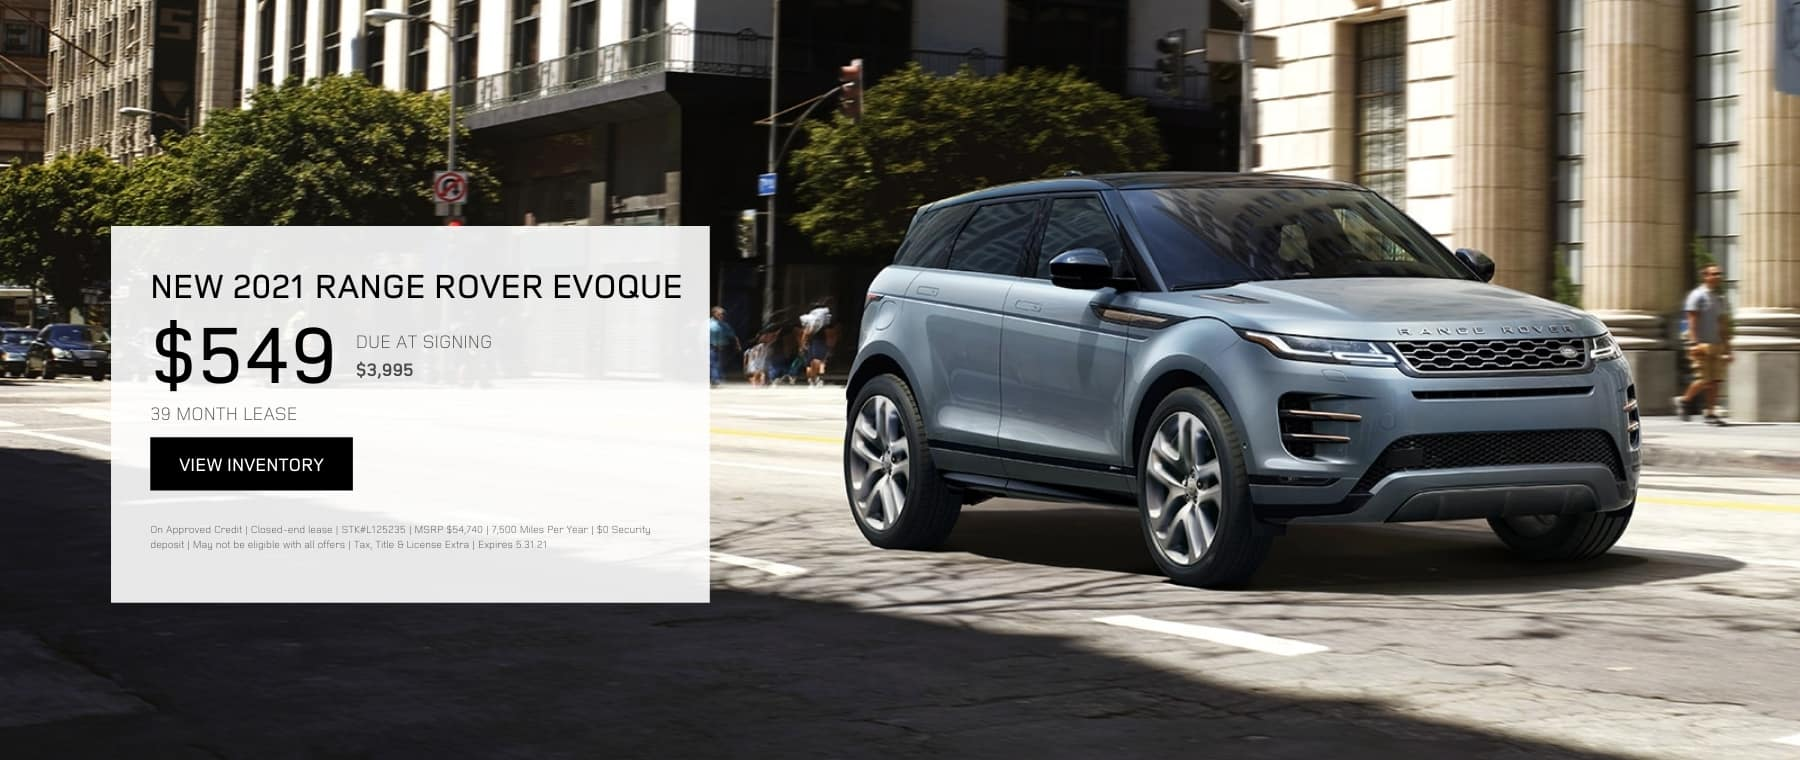 MAY EVOQUE OFFER